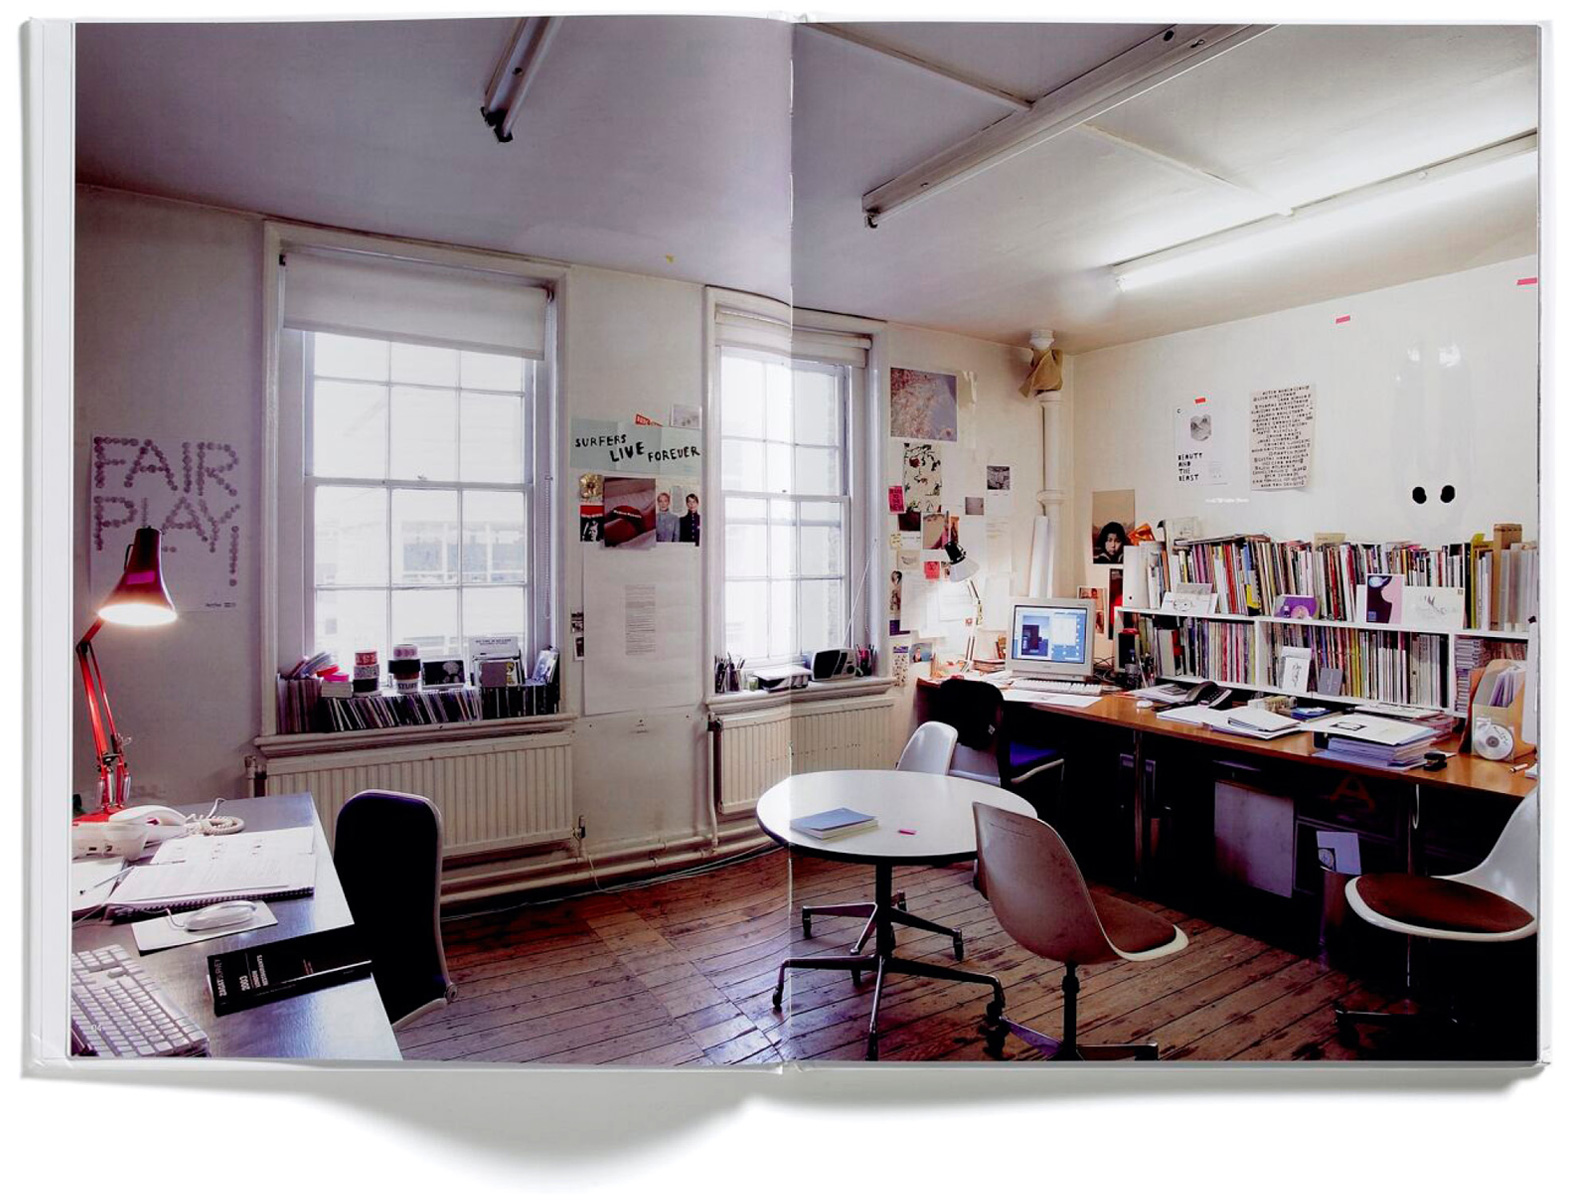 Browns Editions, Browns Editions Publishing, Browns Editions Books, Browns Editions Howard Smith Paper, Browns Editions A British Graphic Design and Print Landscape, Browns Editions Howard Smith Paper A British Graphic Design and Print Landscape